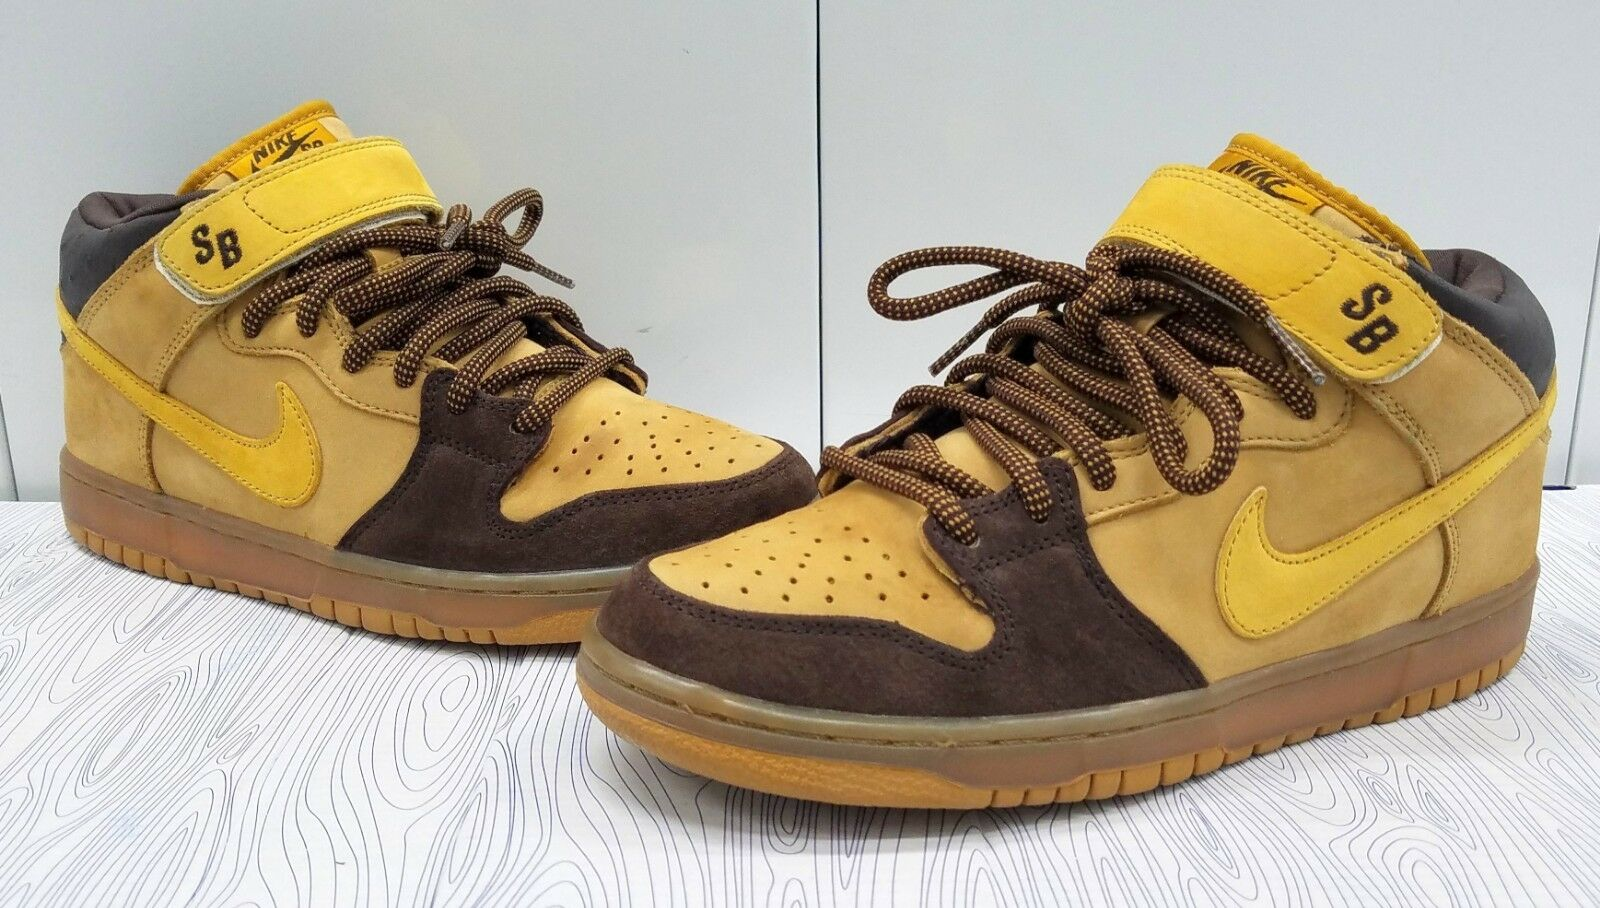 NIKE DUNK SB PRO MID MEN'S SIZE 8 WHEAT/CAPPUCCINO/BRONZE 314383-771 2006 Cheap and beautiful fashion